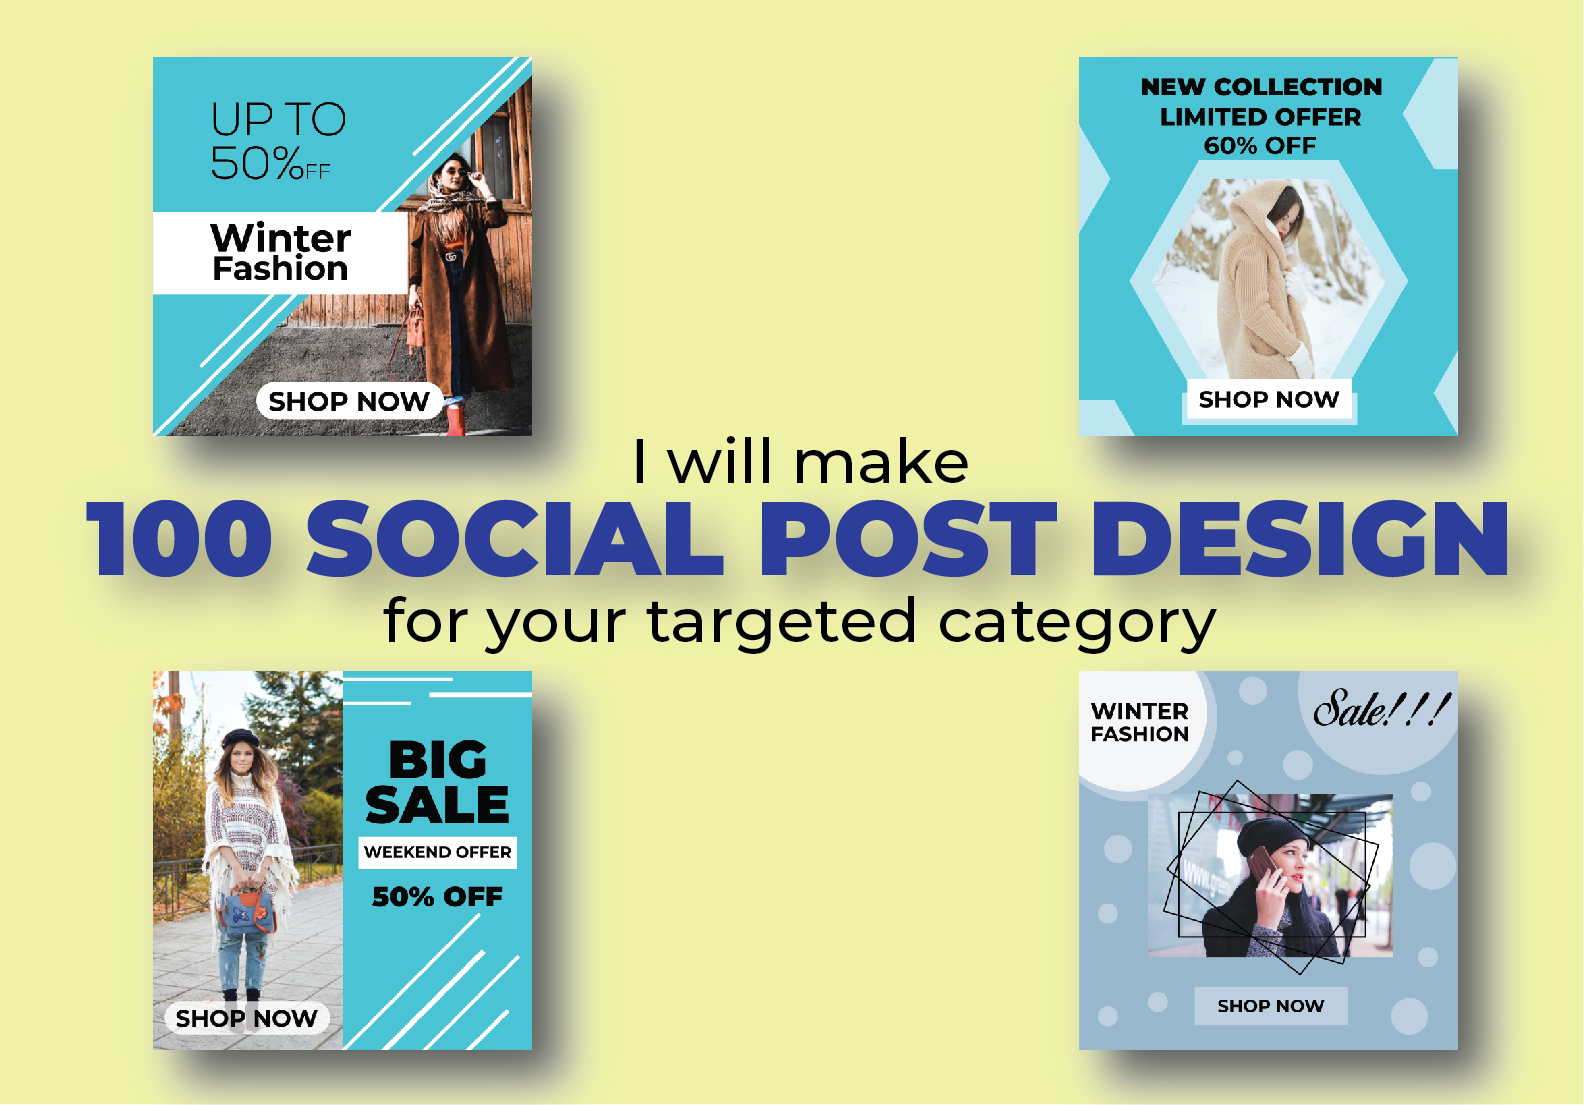 I will make 100 social post design for your targeted category.